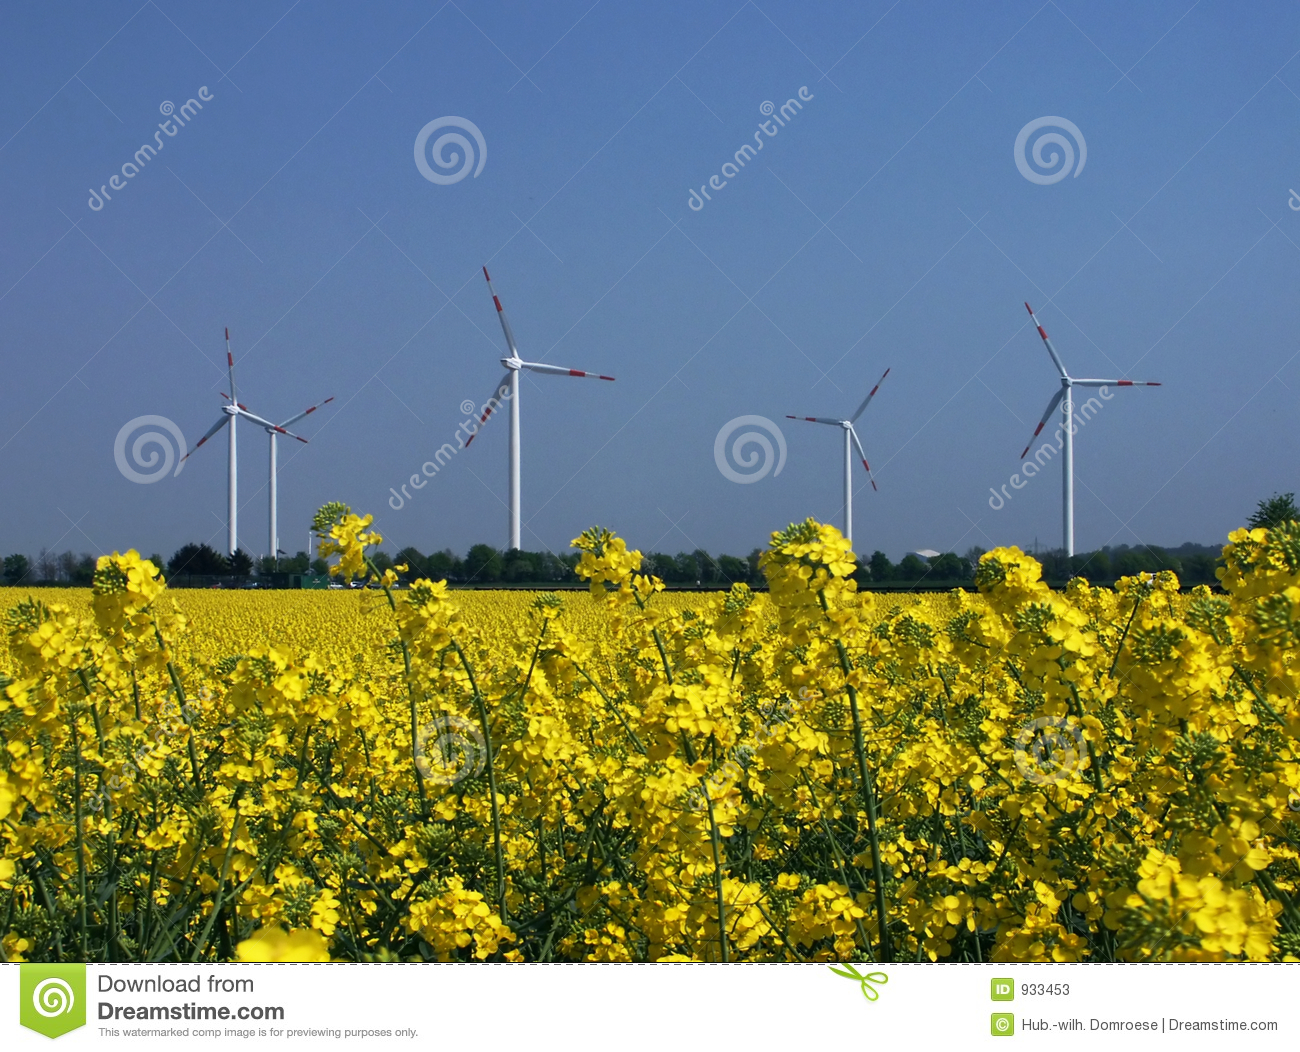 Regenerative energy sources, colza and wind